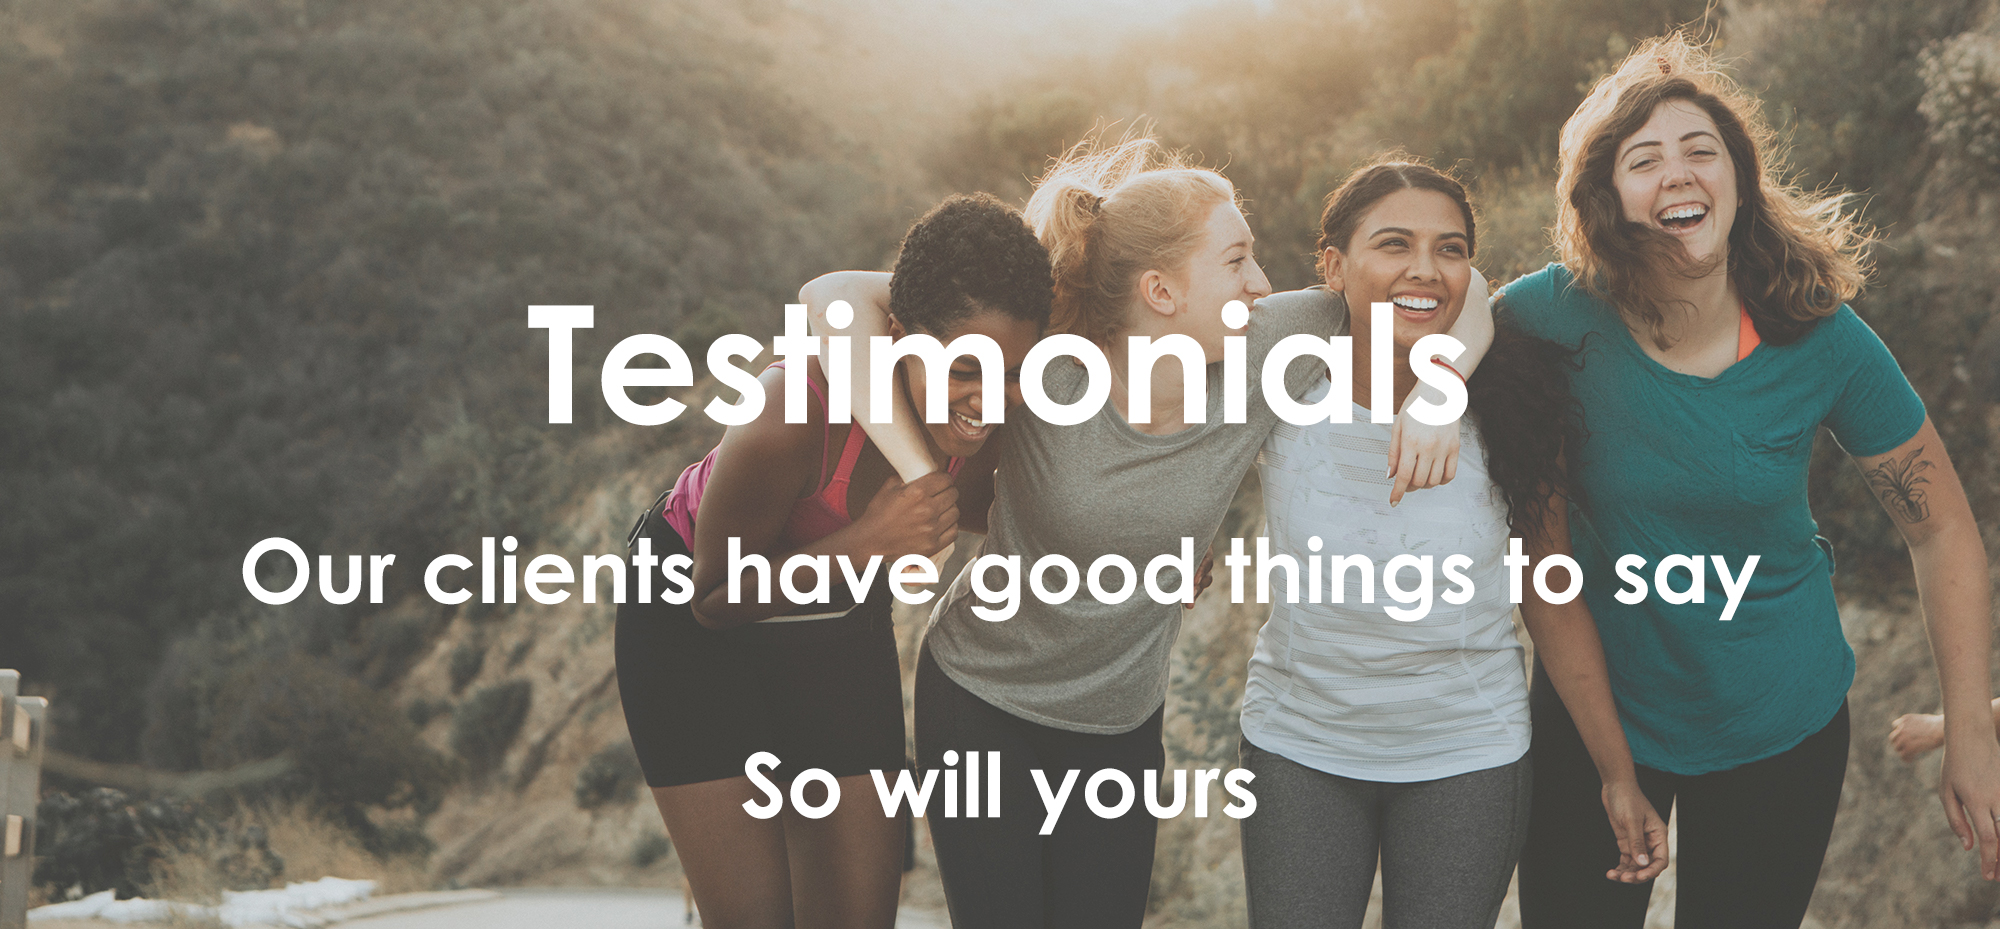 Testimonials - Our clients have good things to say, so will yours